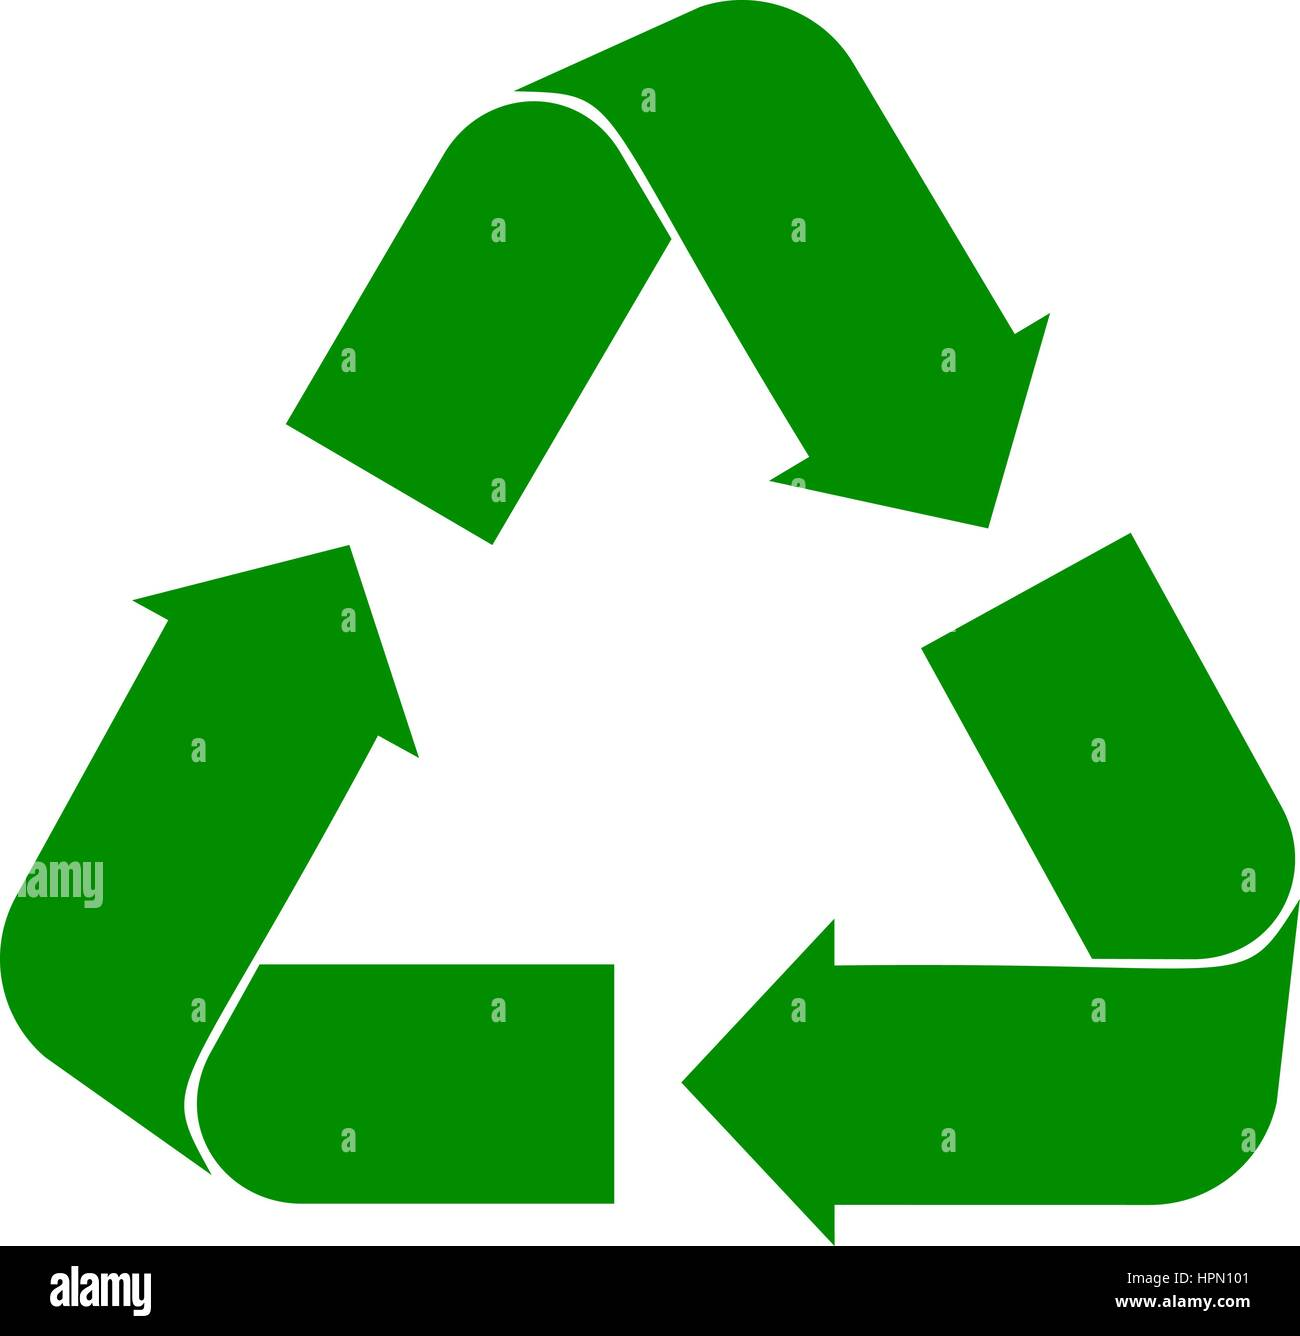 Recycle symbol vector green cycle on a white background recycle recycle symbol vector green cycle on a white background recycle sign recycle symbol clip buycottarizona Choice Image